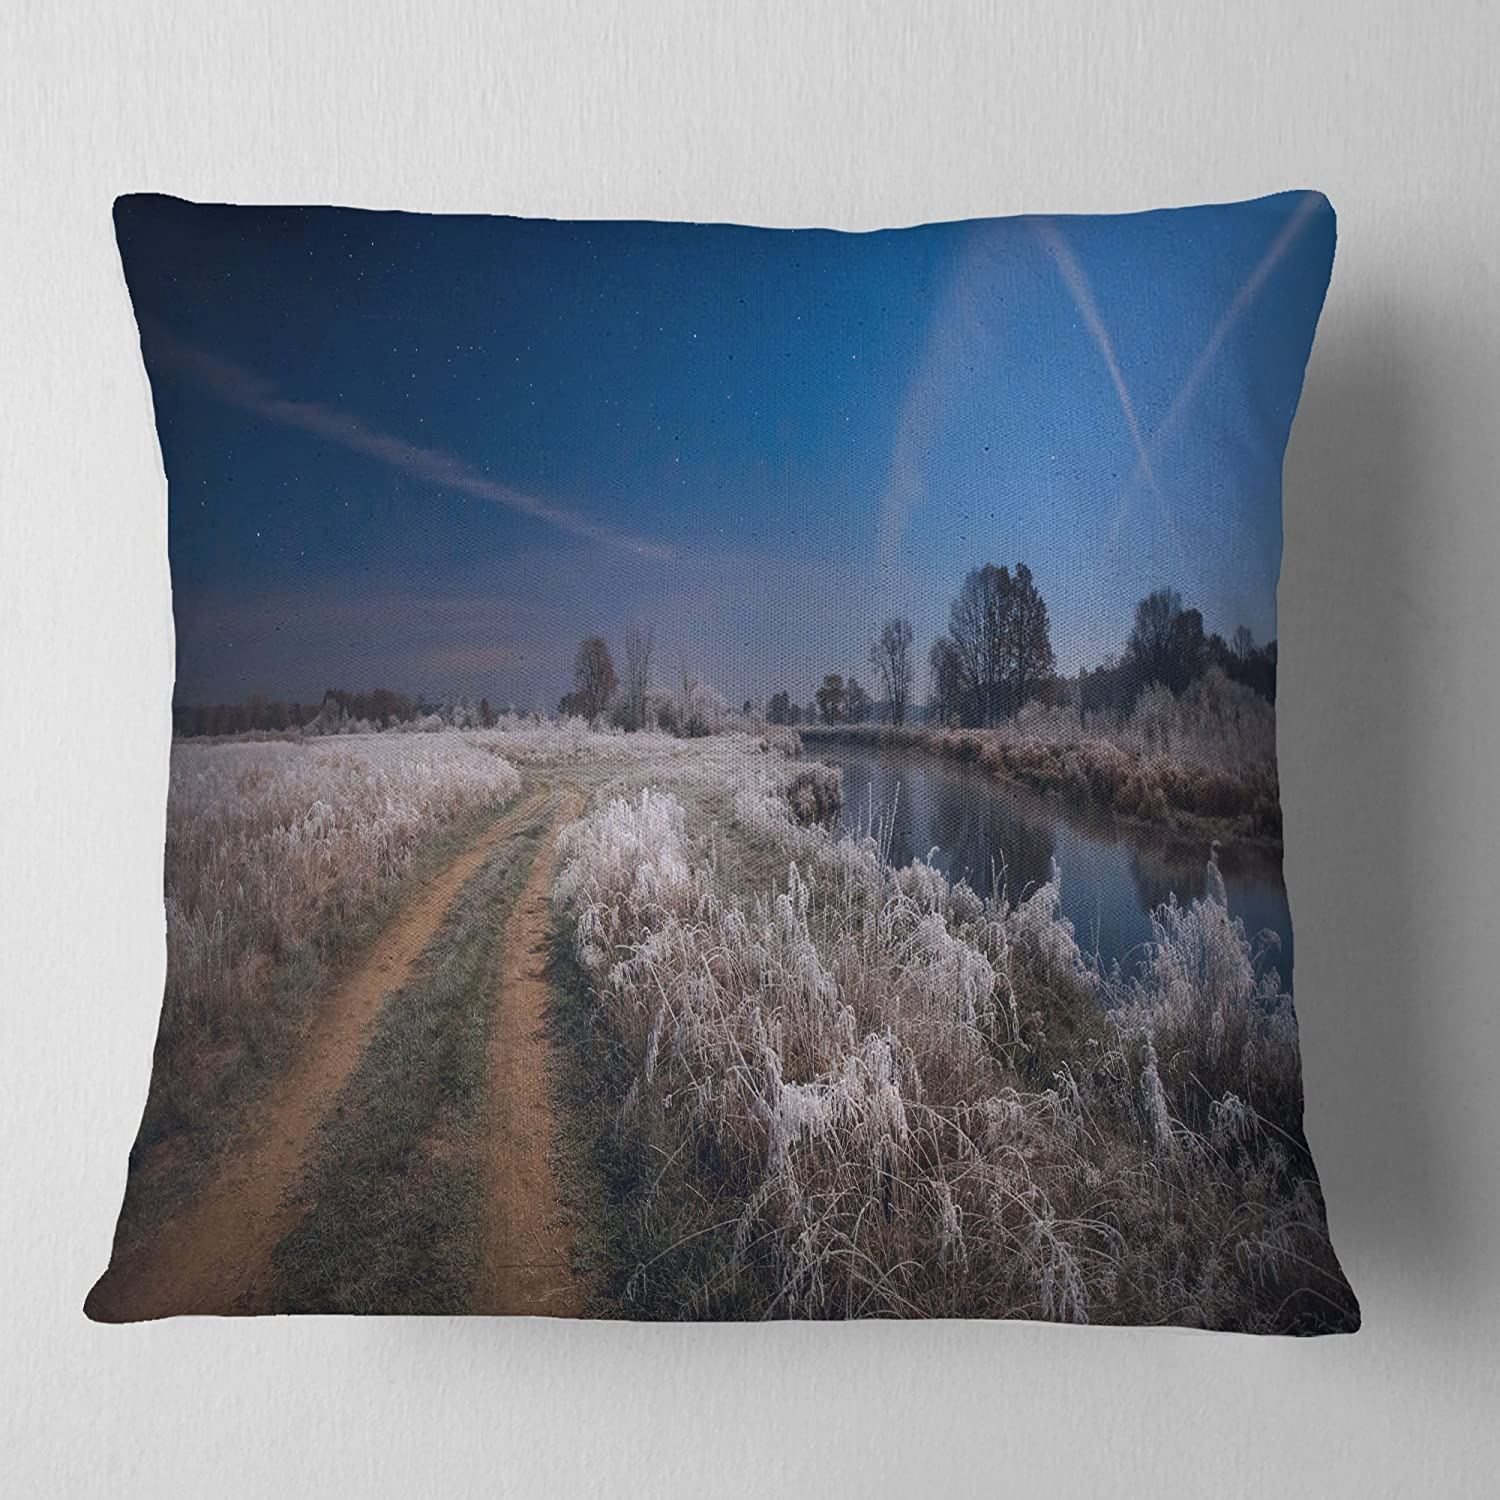 Designart CU11299-26-26 Frosty Fall Night in Moonlight' Landscape Printed Cushion Cover for Living Room, Sofa Throw Pillow 26 in. x 26 in. in, Insert Side